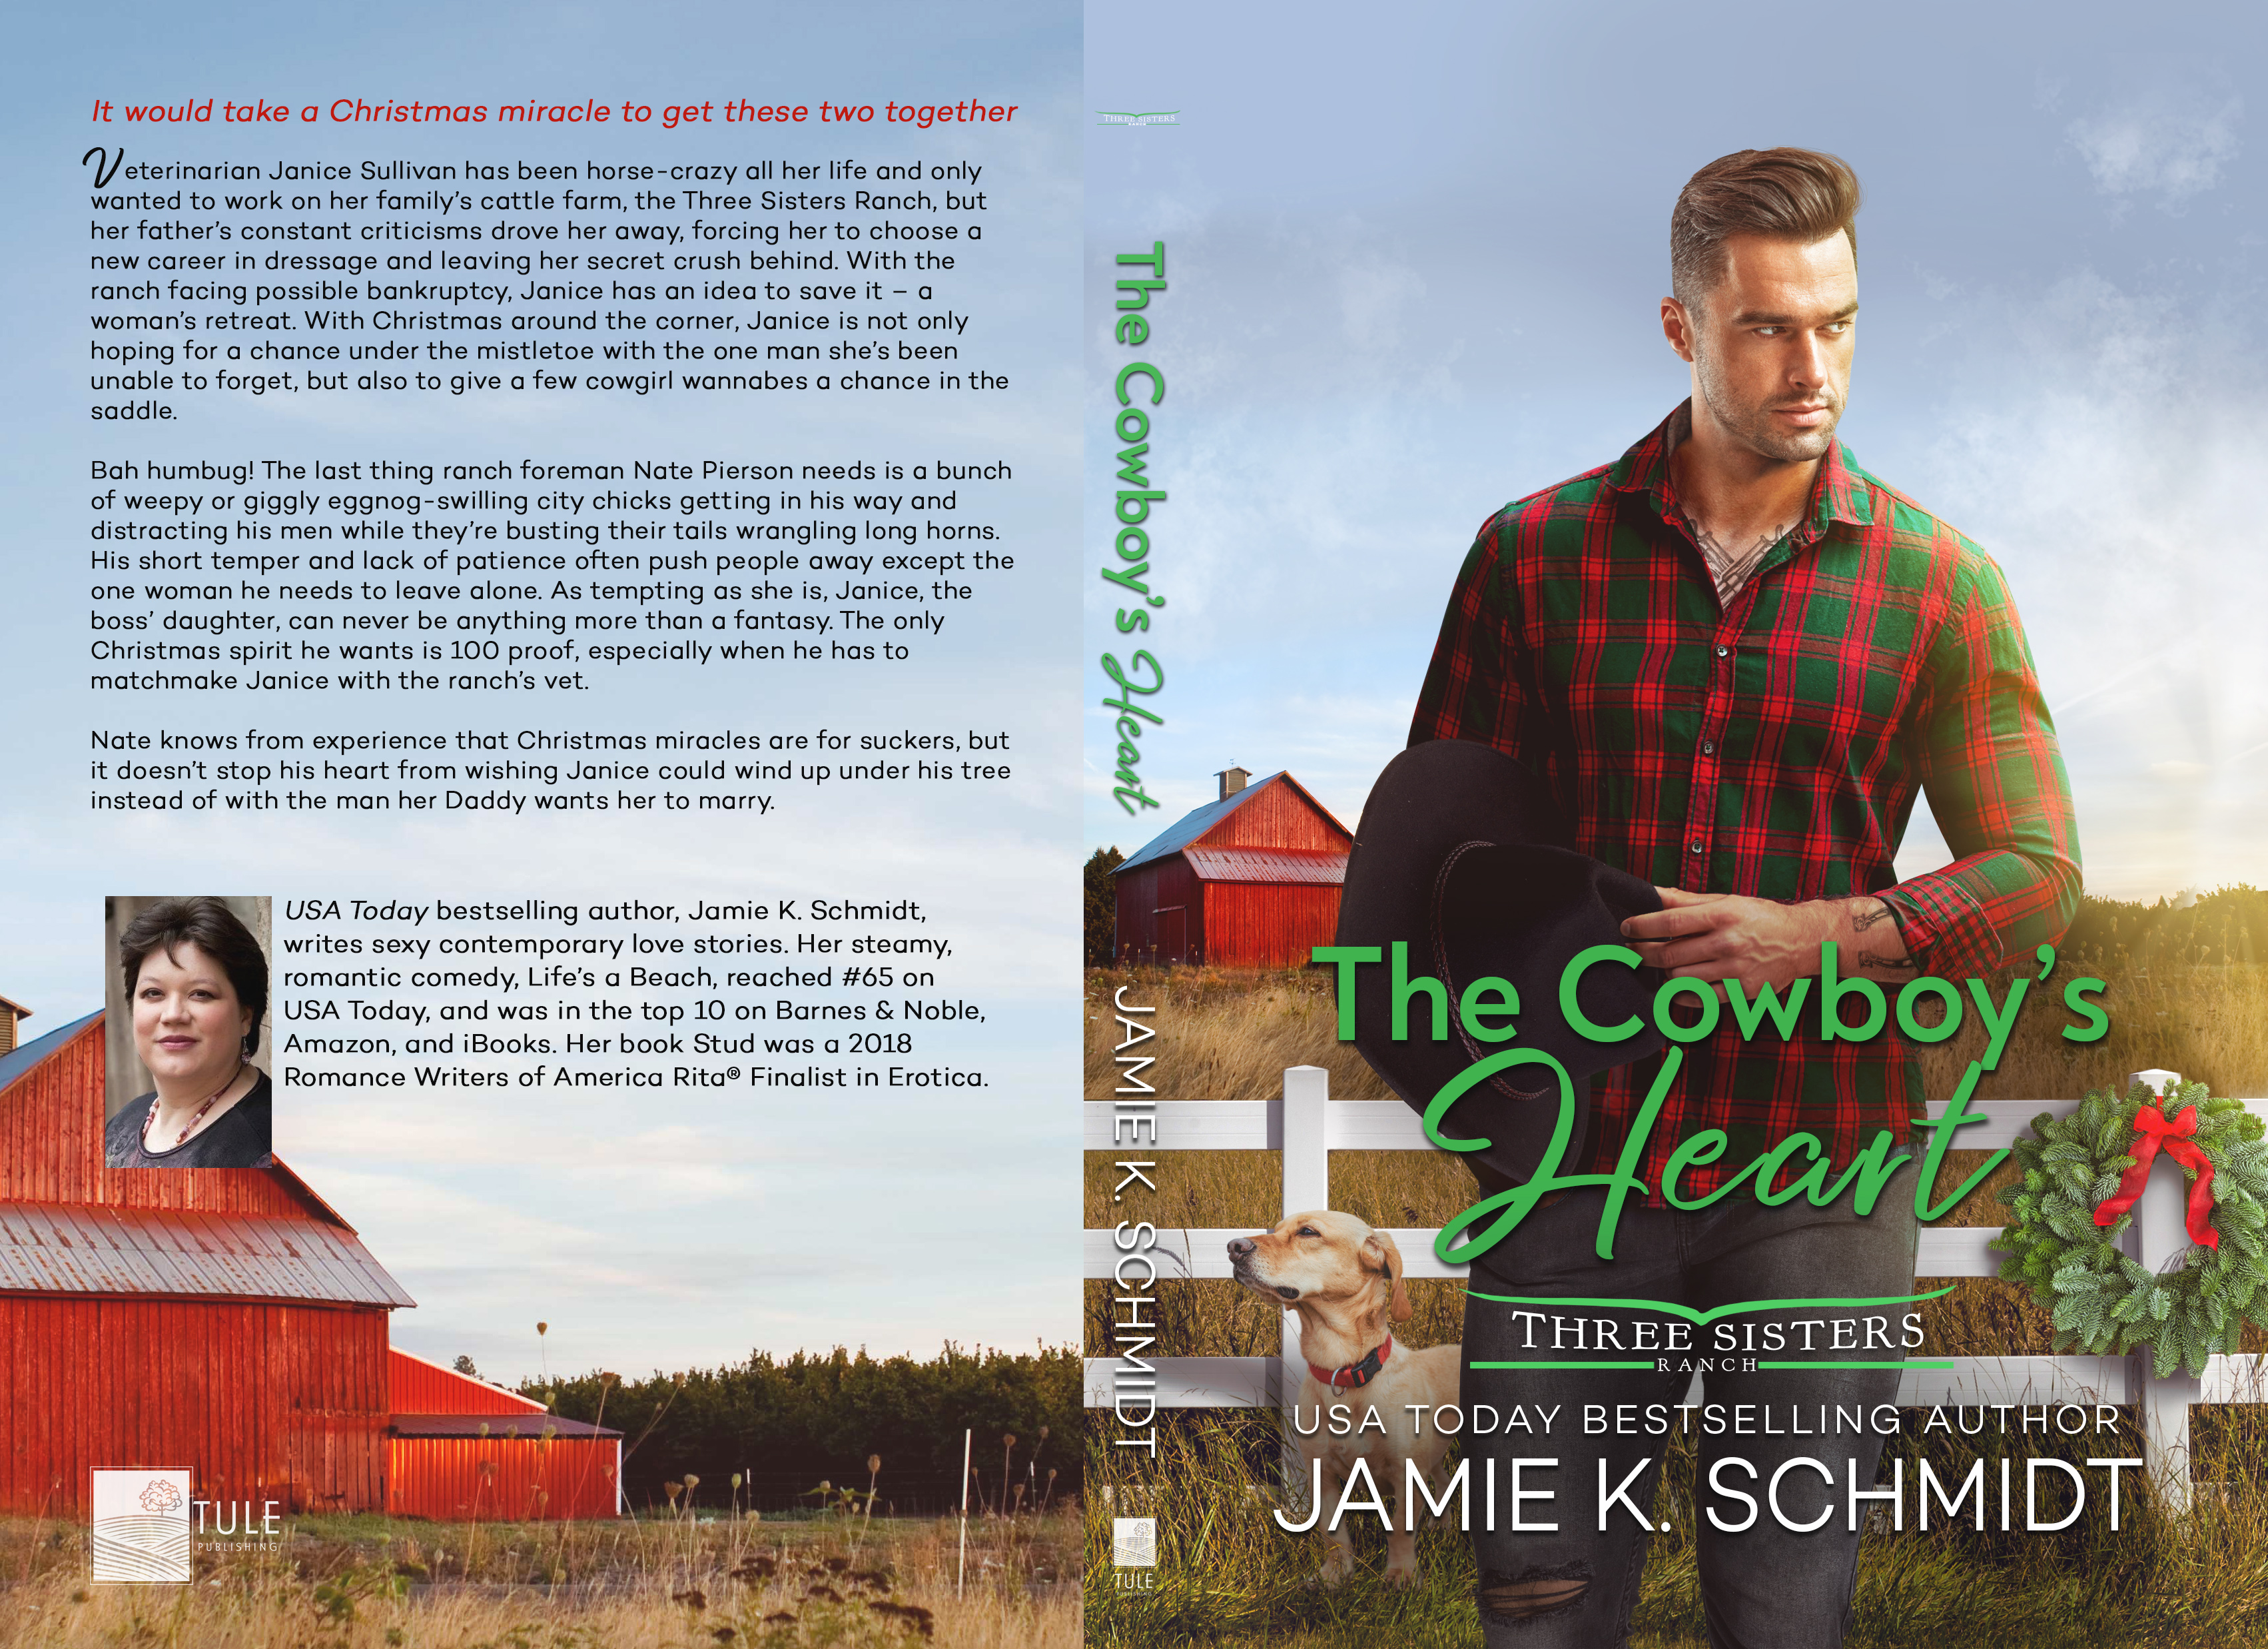 The Cowboy's Heart 5